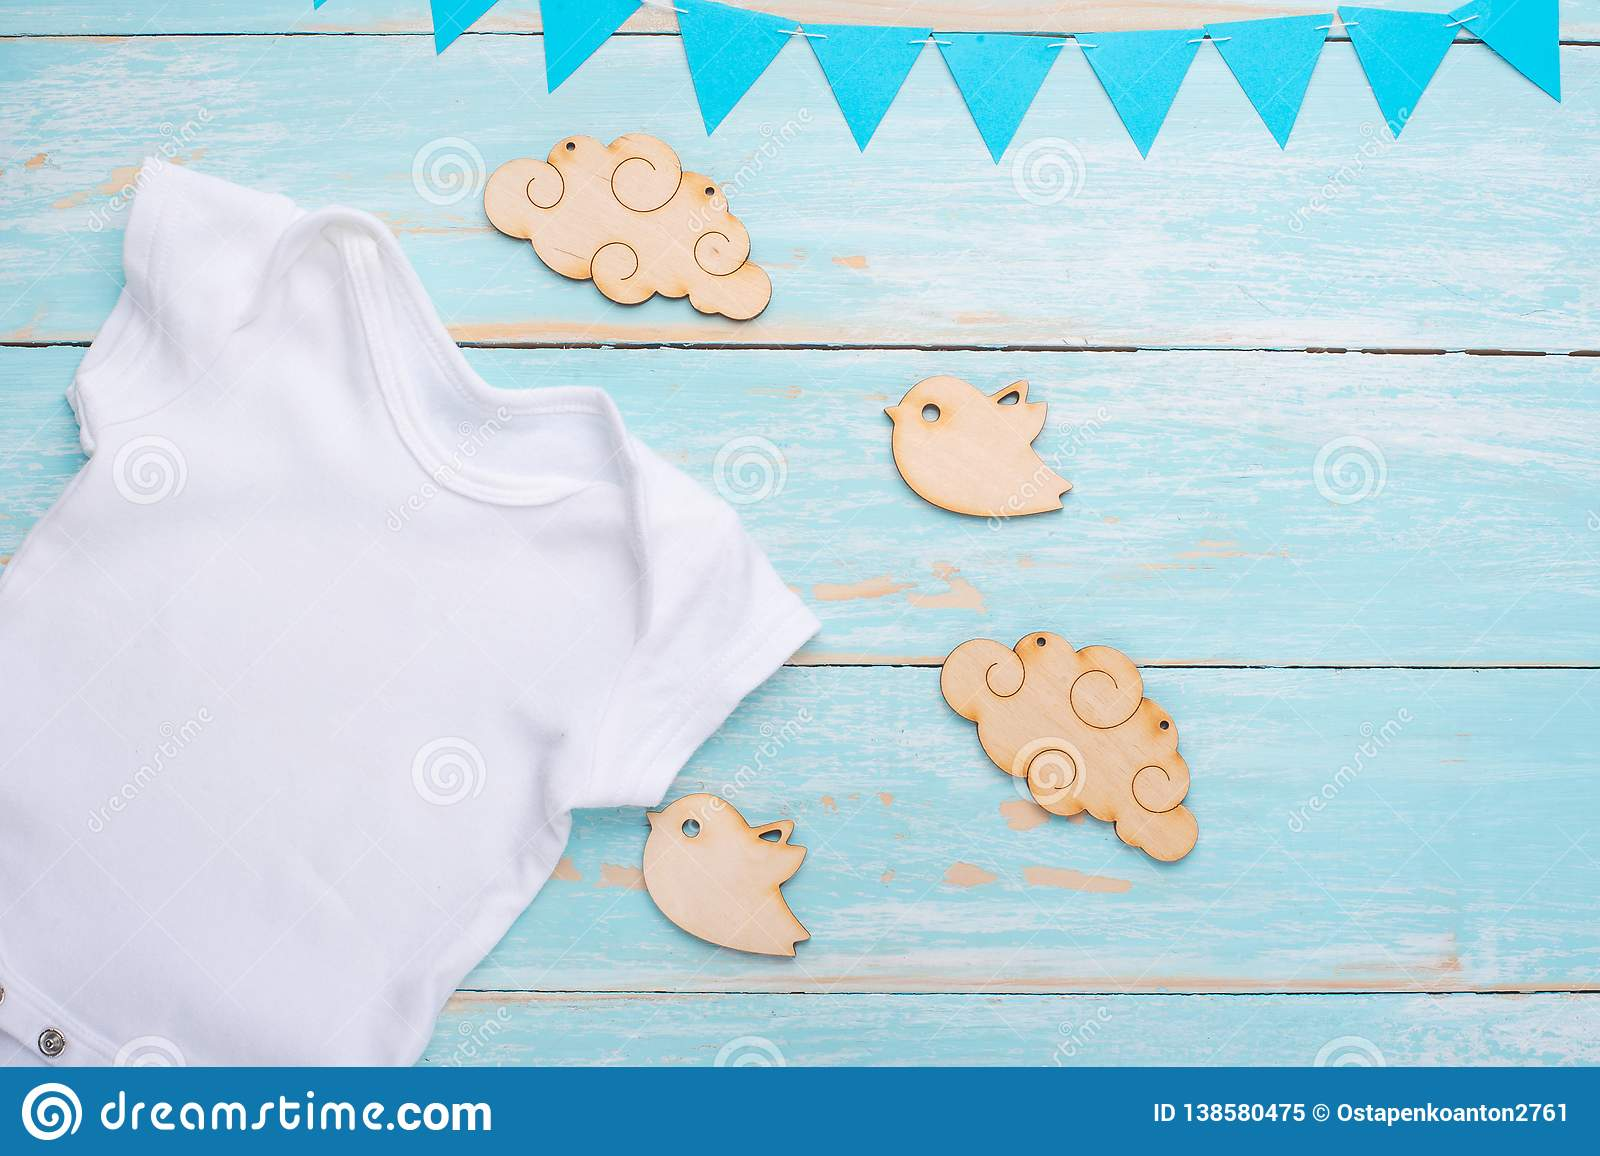 303b5a7065189 Mockup Flat Lay White Baby Shirt With Wooden Toys On A Blue ...